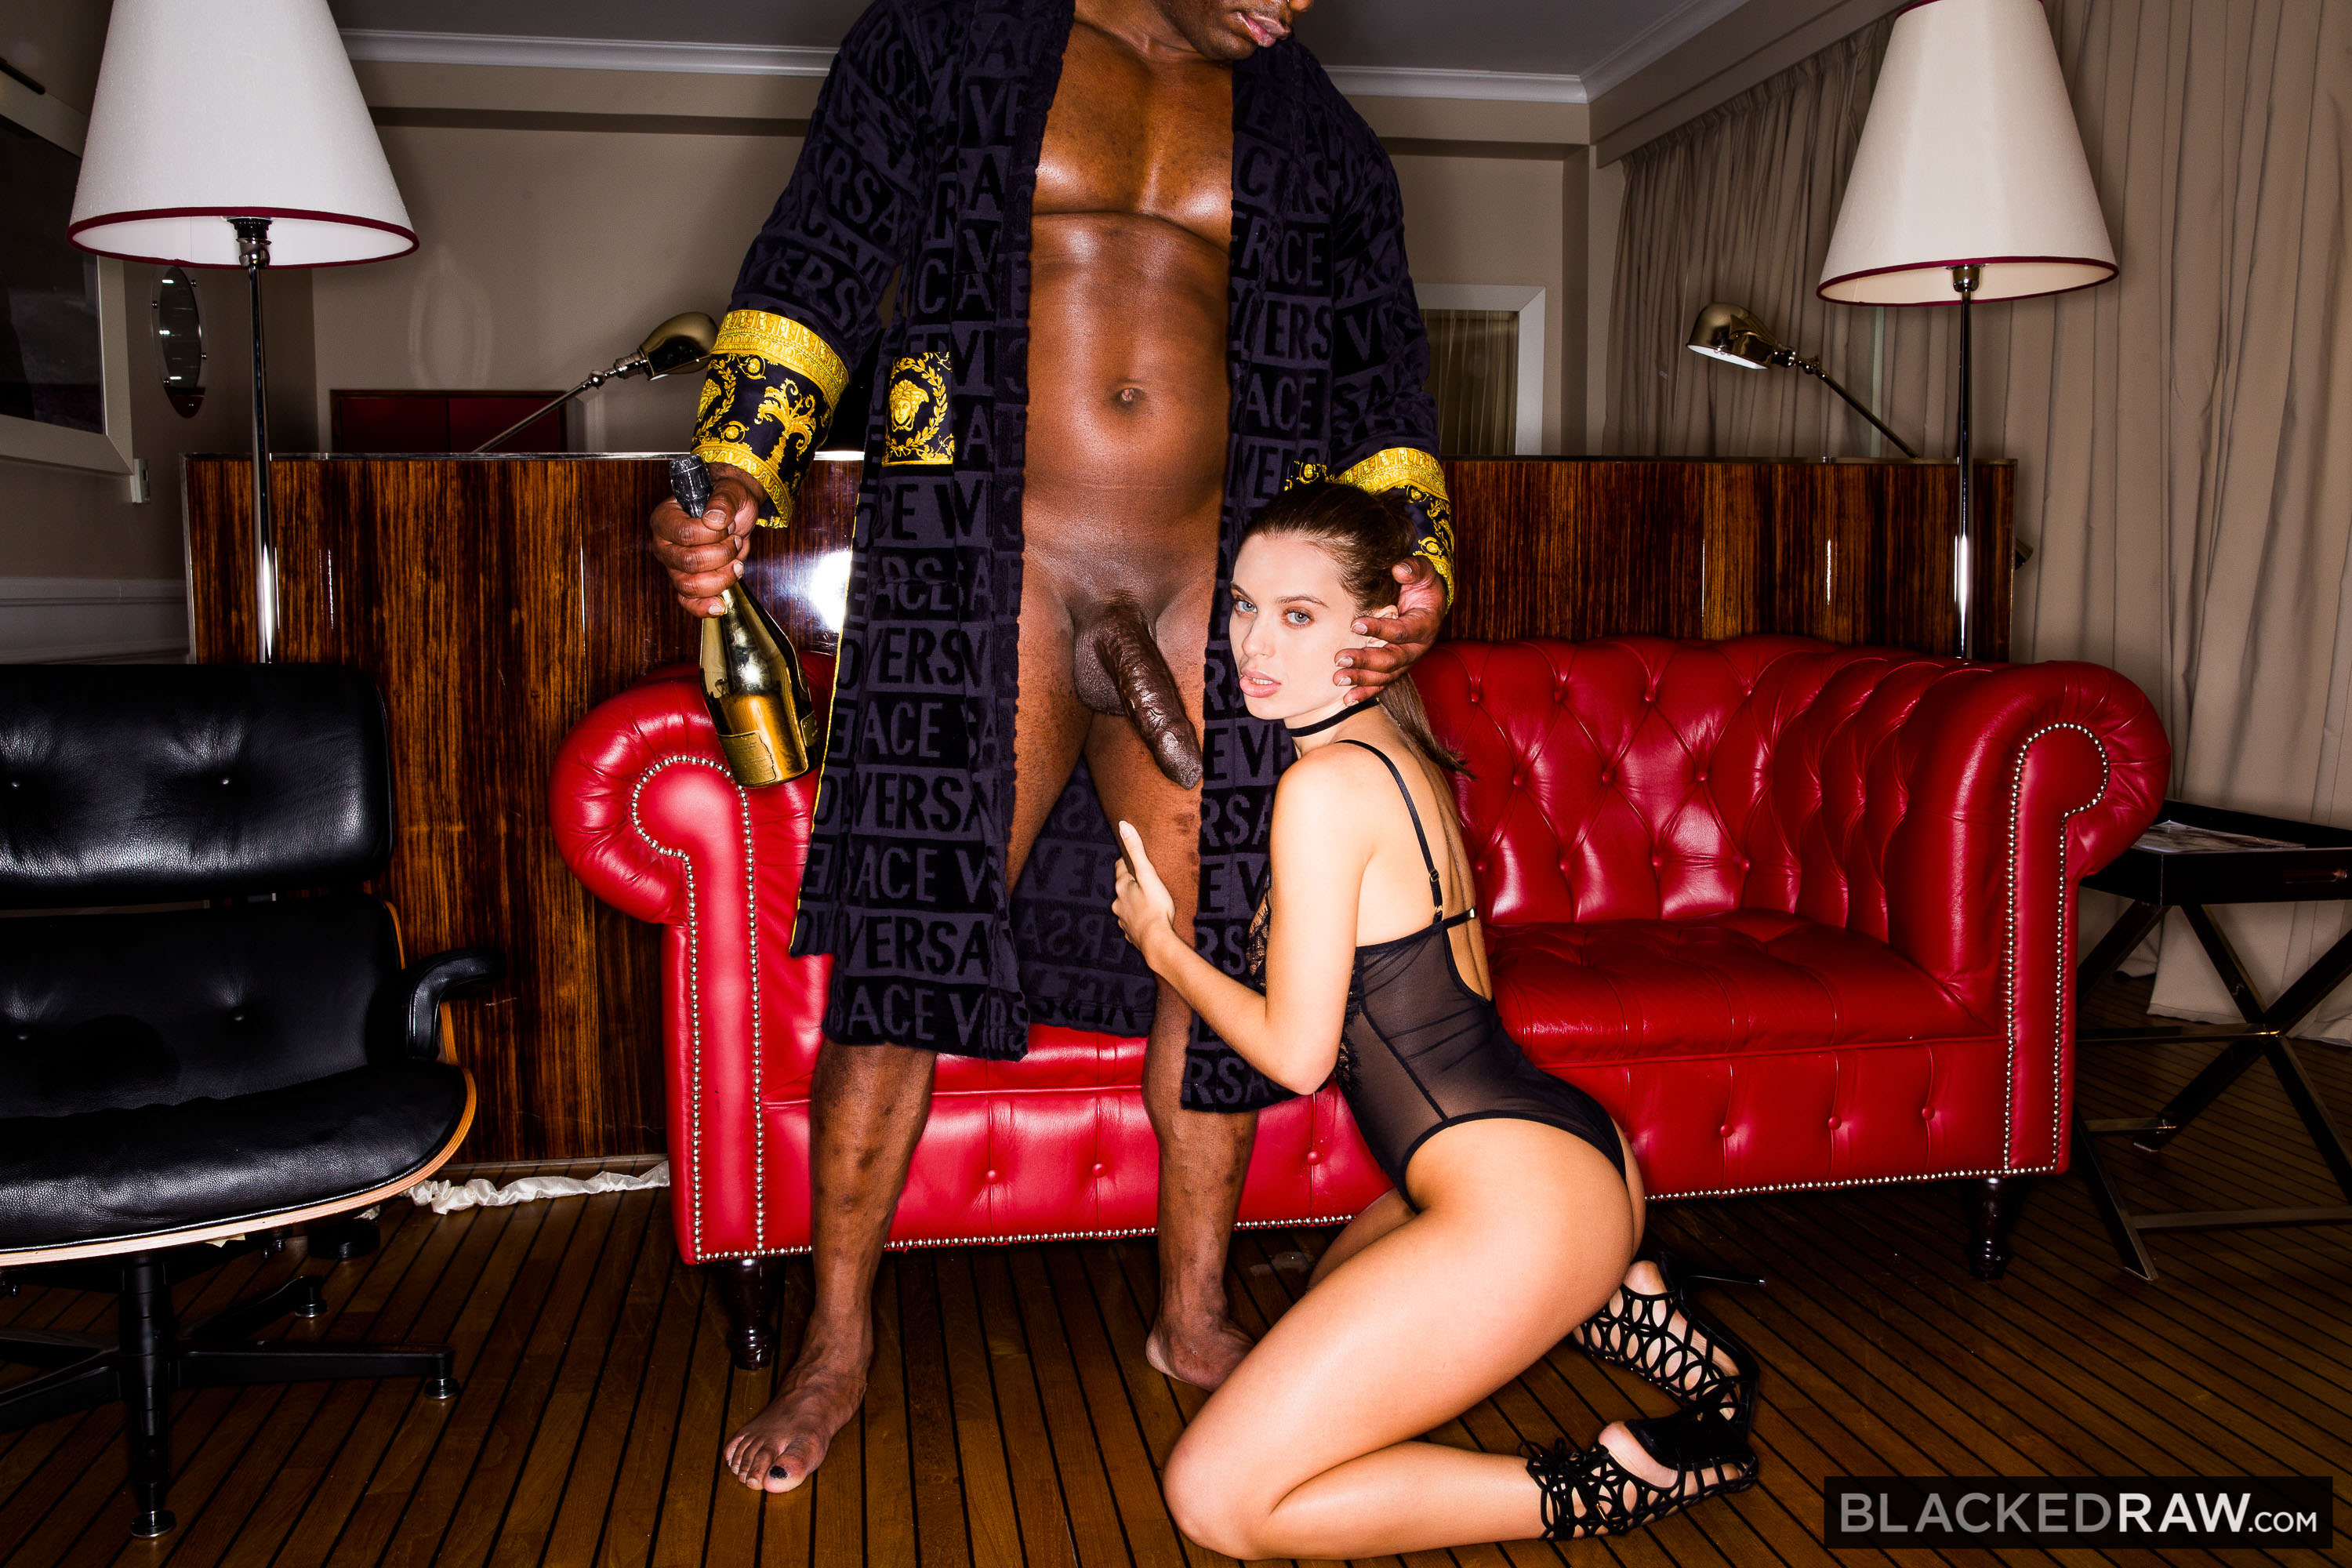 Blackedraw girlfriend takes her open relationship too far wi 5